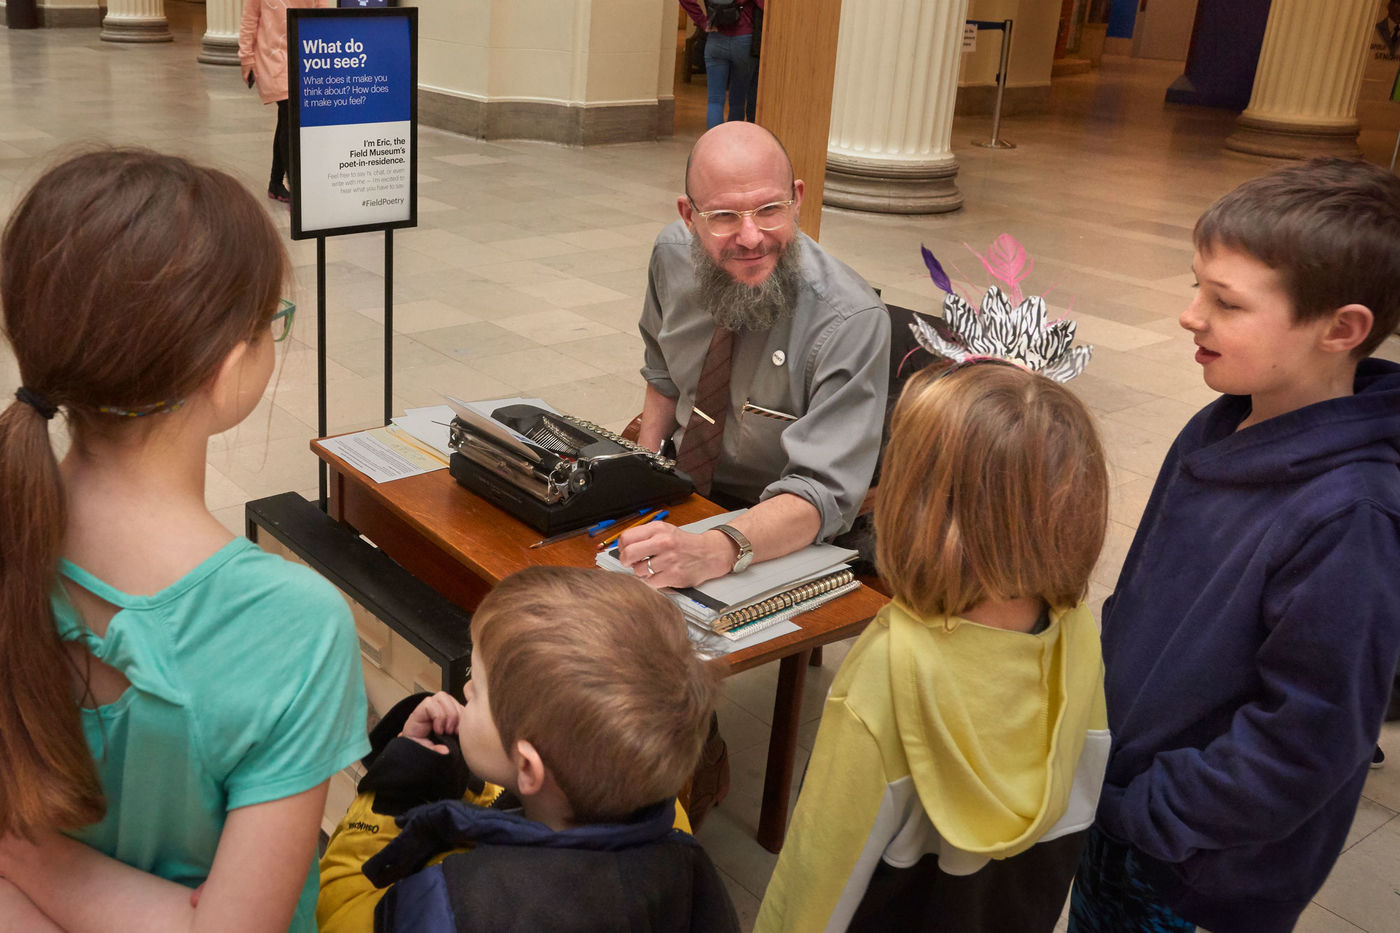 "Four small children gather around a desk where a man sits at a typewriter. The desk is situated in the museum's main hall, with columns in the background, and a sign next to the desk reads, ""What do you see?"""